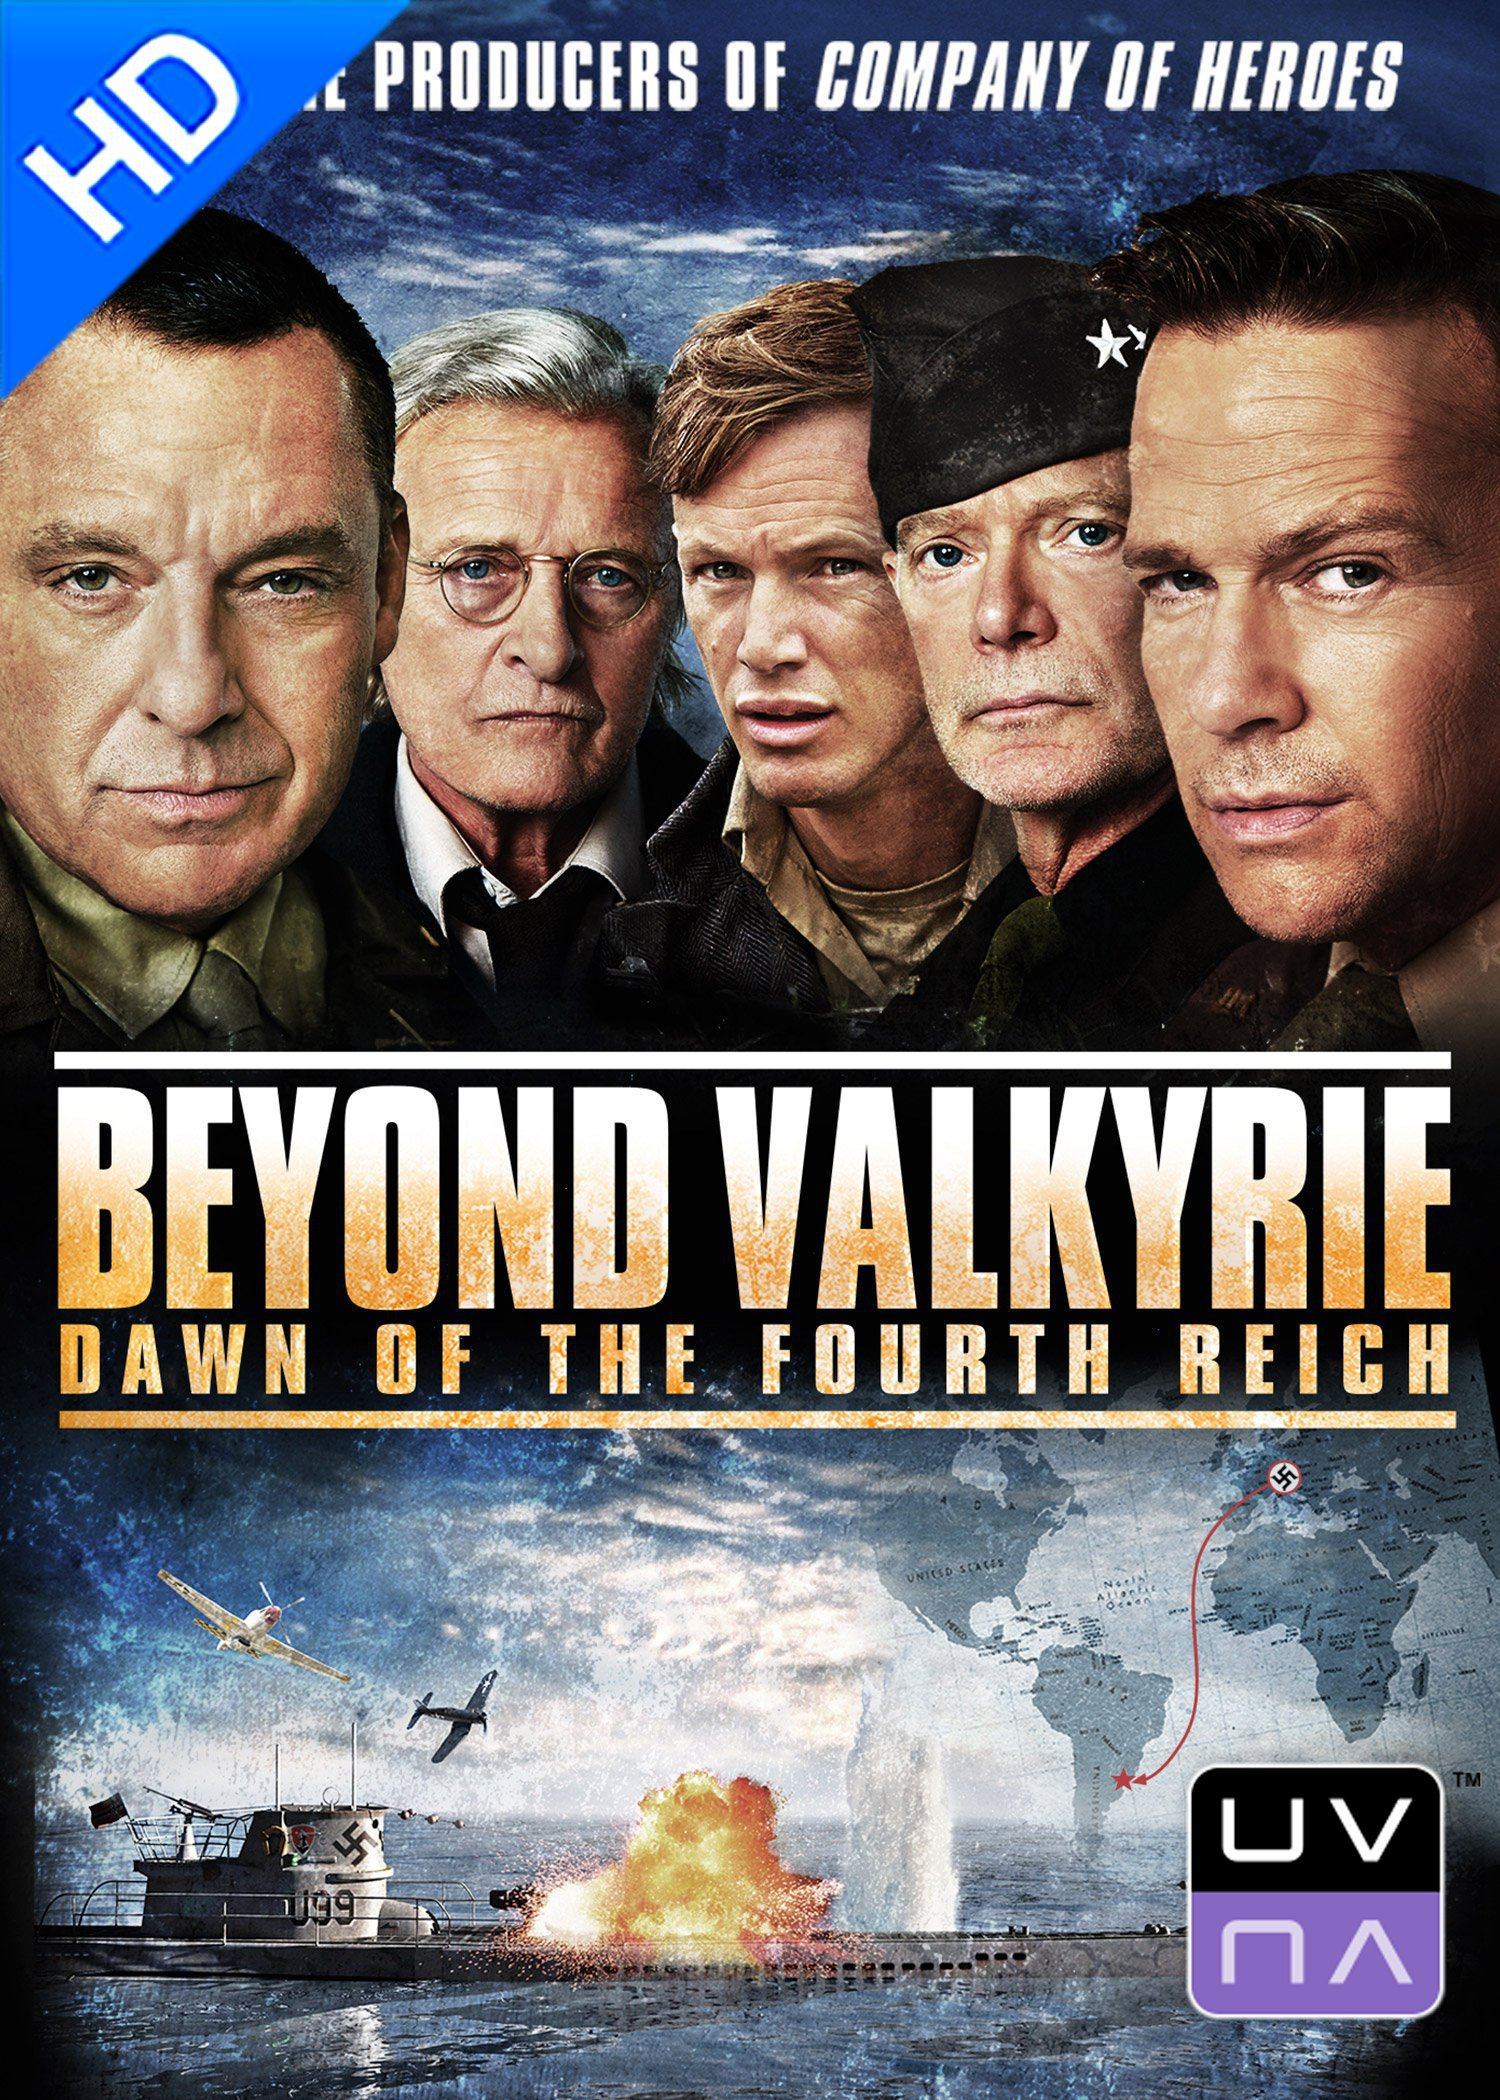 beyond-valkyrie-dawn-of-the-fourth-reich